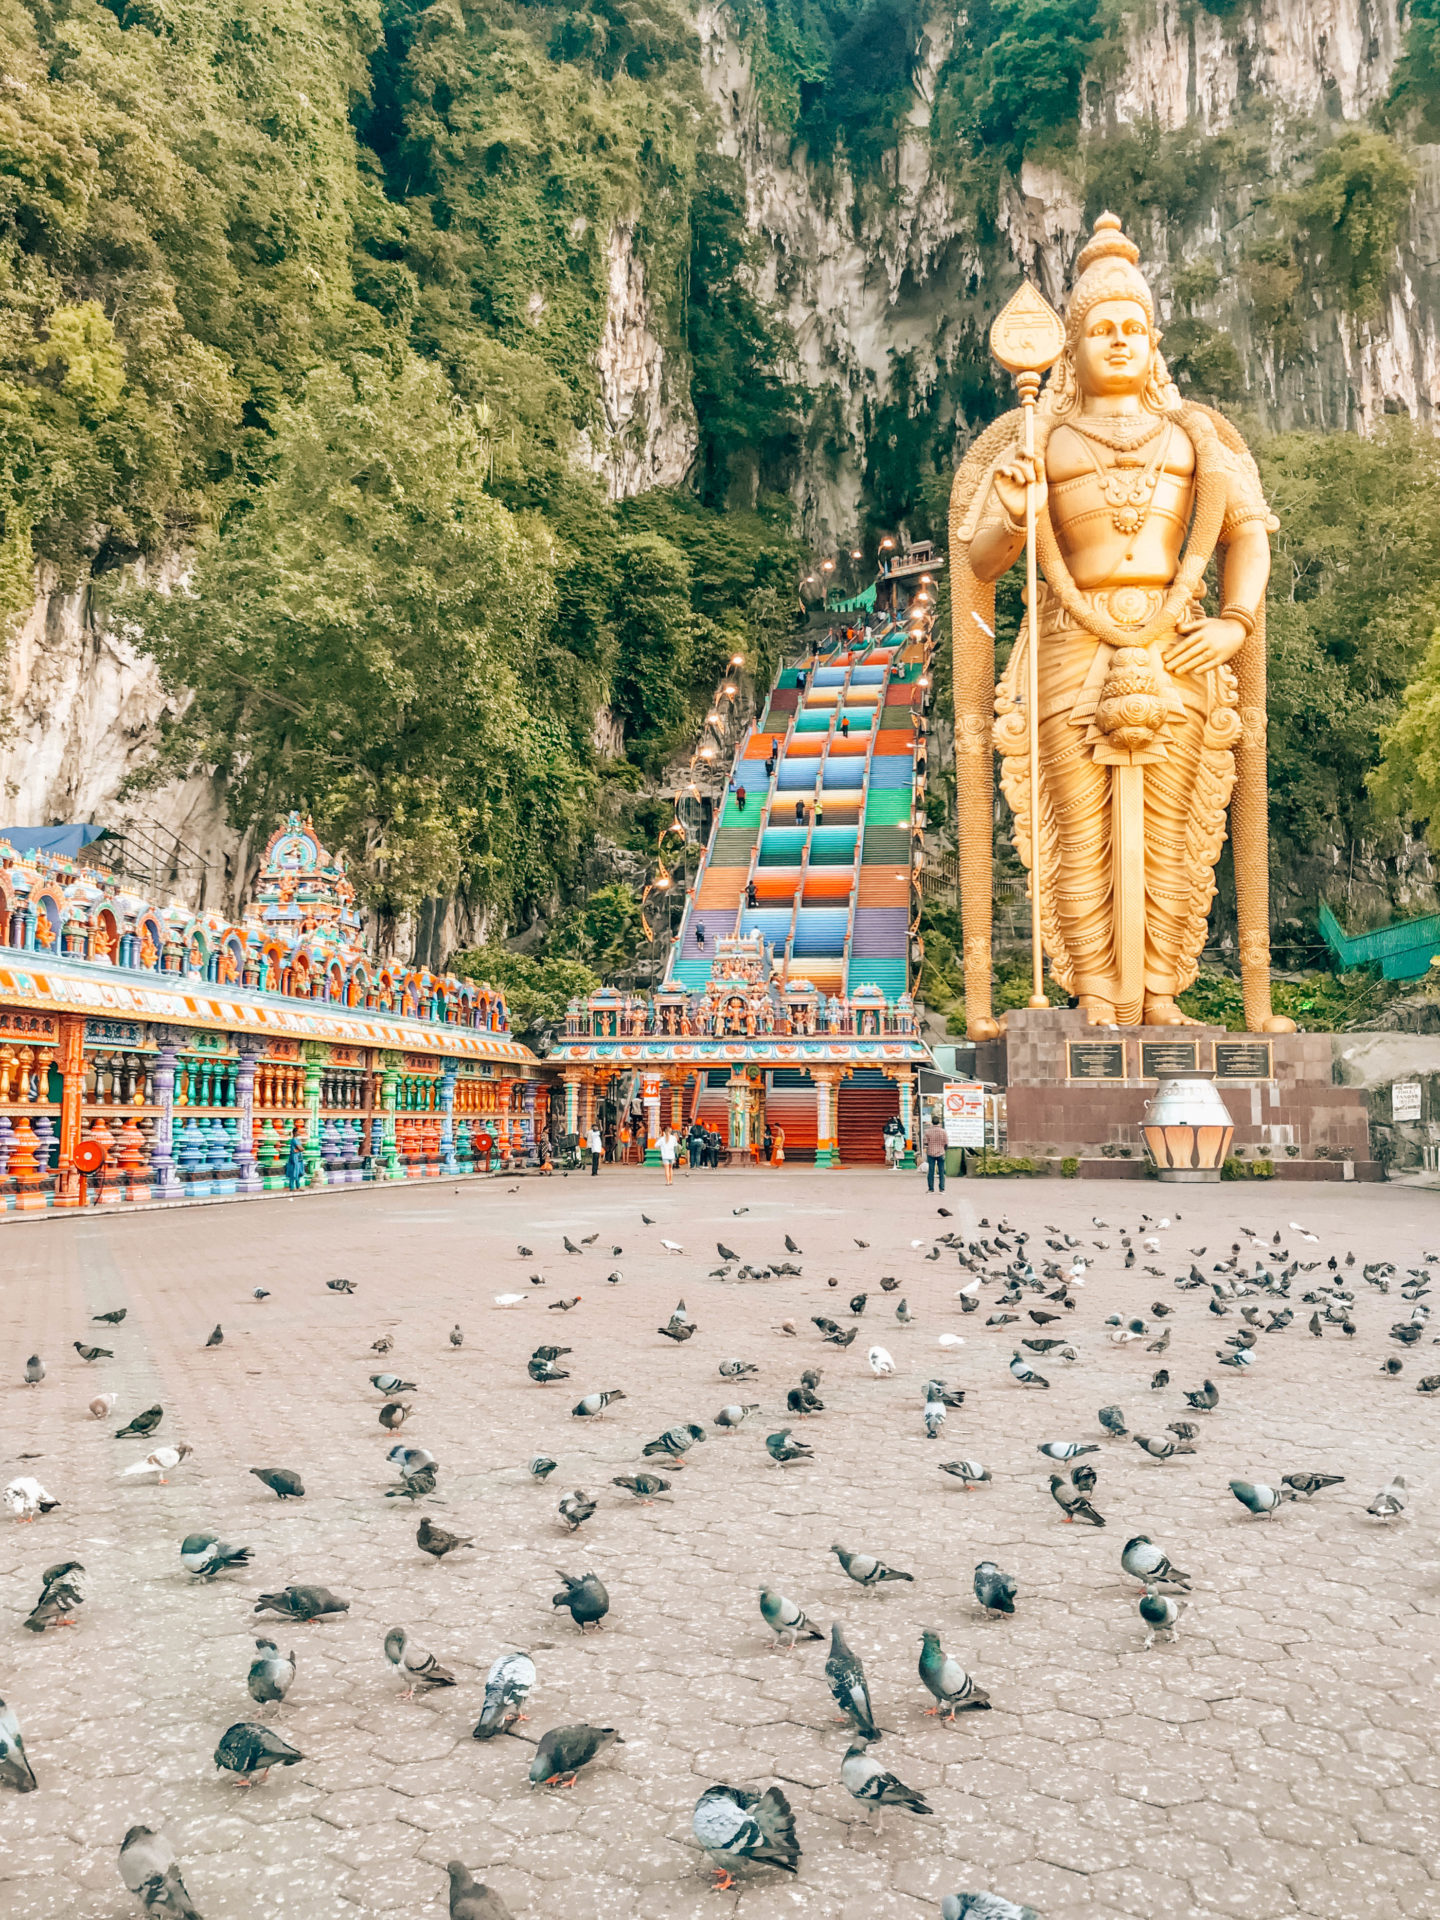 Batu Caves at sunrise, a must-do when in Kuala Lumpur